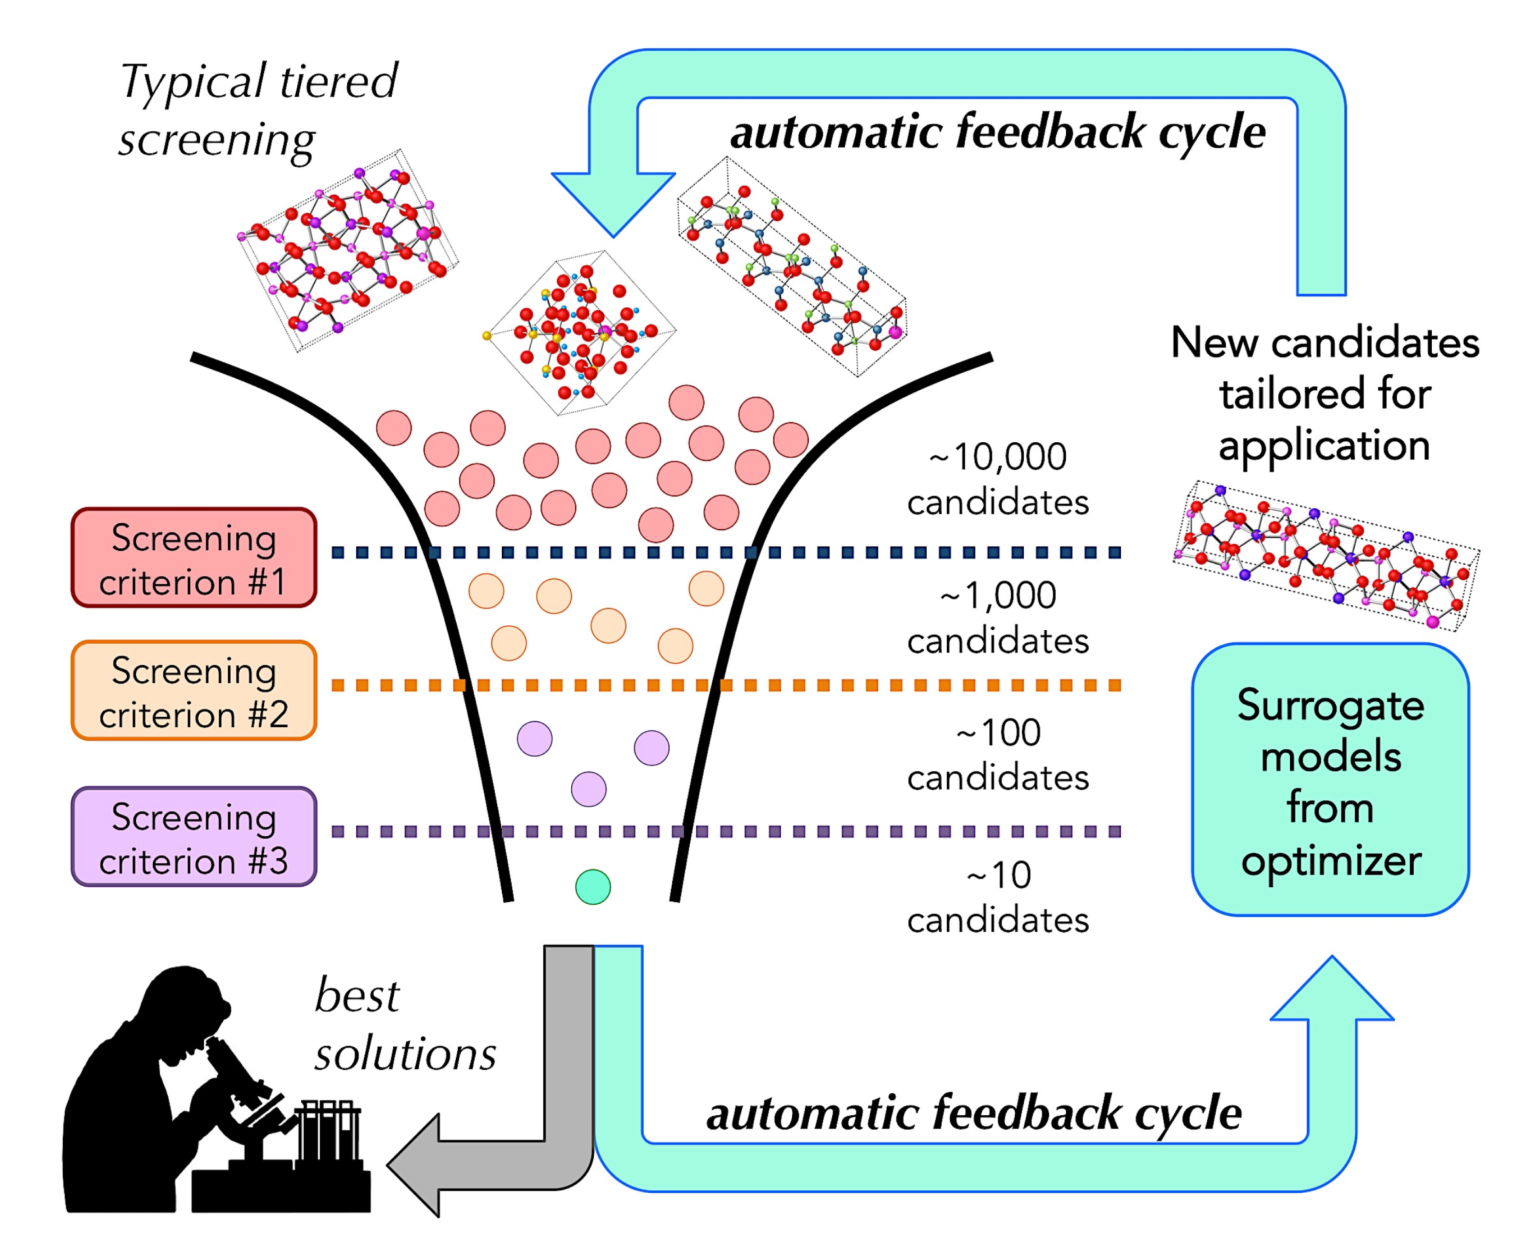 """The discovery of novel materials is driven by a screening cycle to identify promising candidates with materials properties suited for the application. Computed materials in MP's database can be filtered by applying selection criteria that increase the likelihood of successful synthesis in the lab. New results from synthesis and characterization in the lab are fed back into the """"screening funnel"""" to improve the list of materials candidates."""